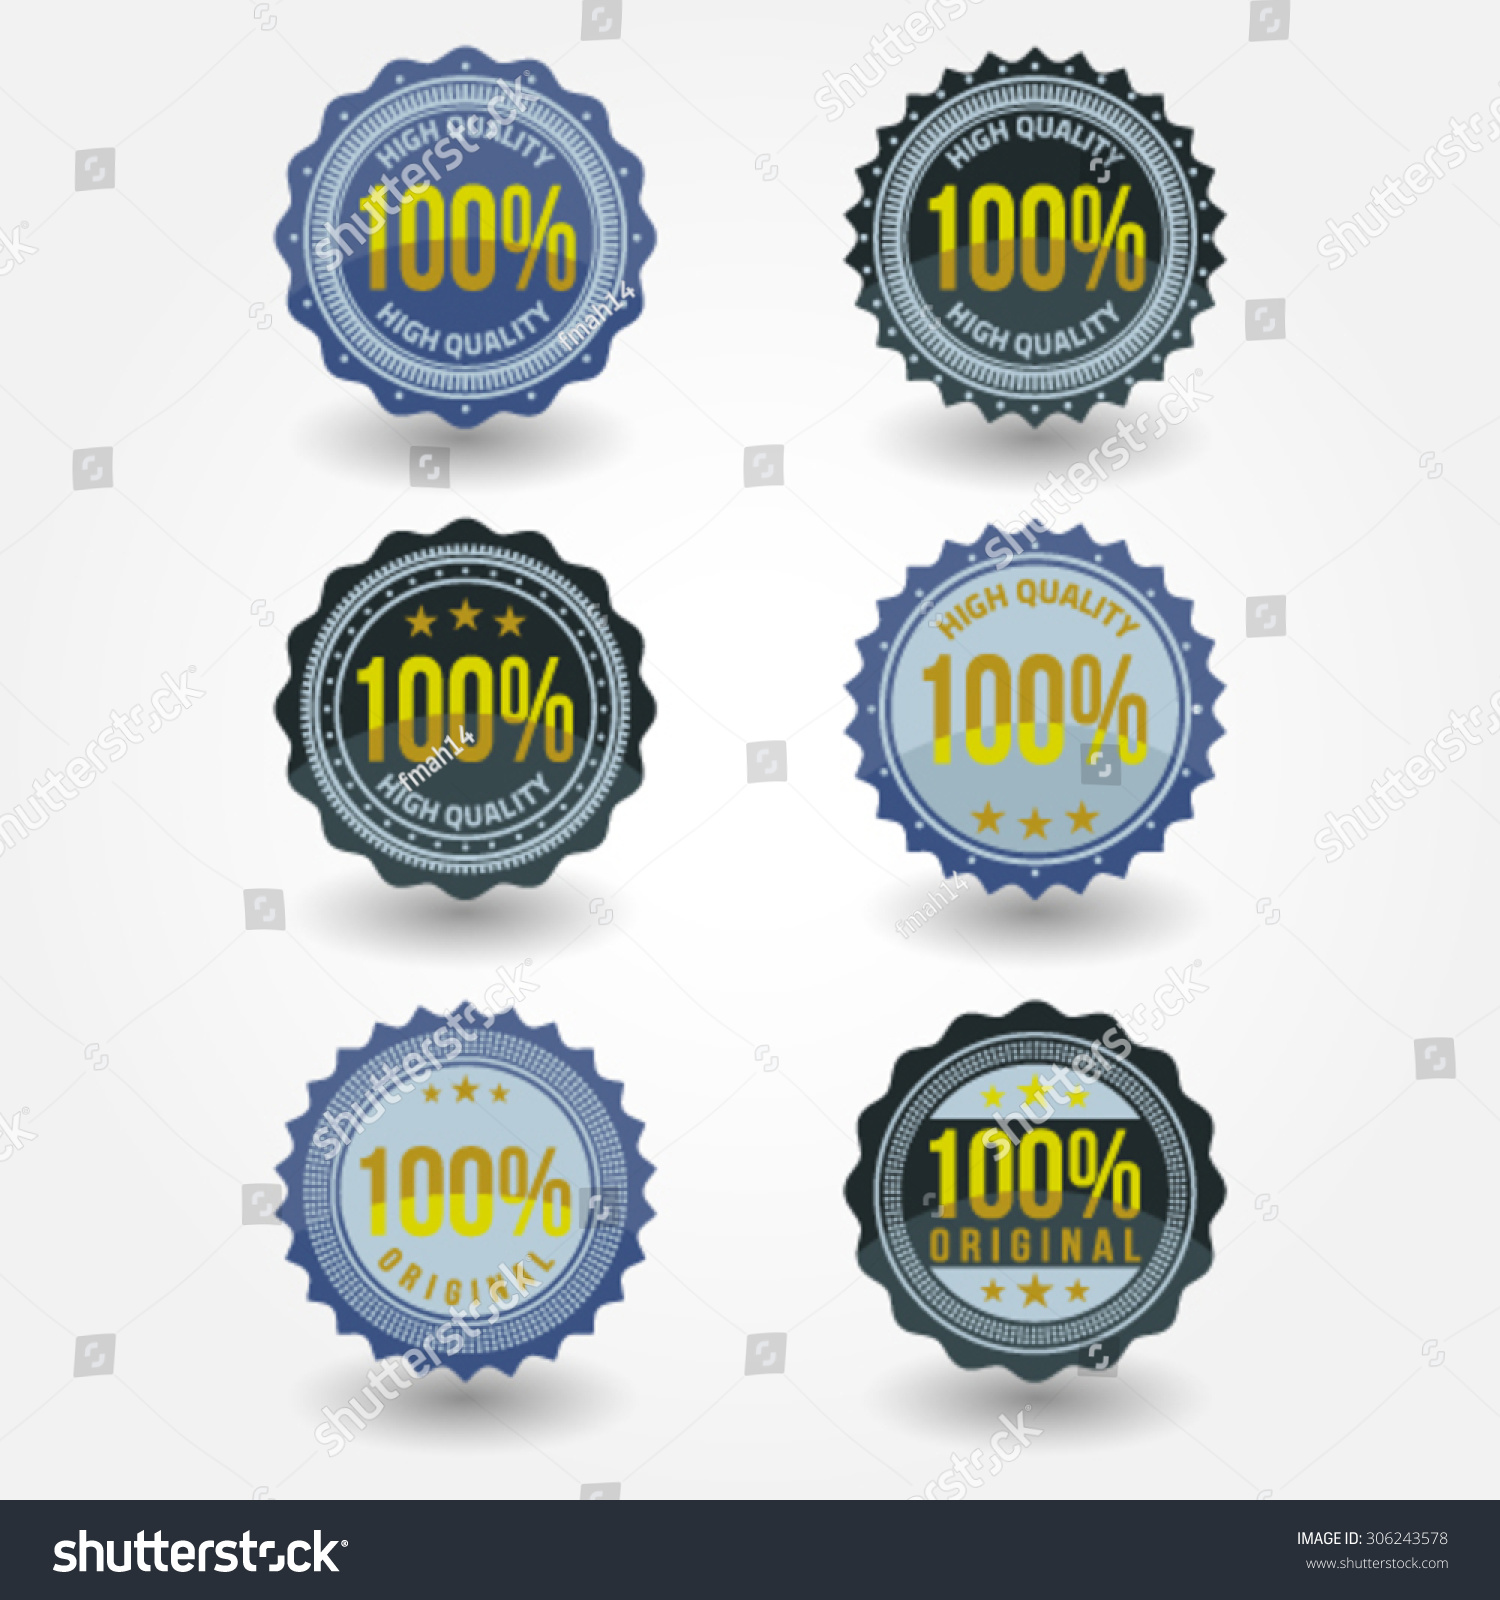 Vintage labels 100 percent high quality template set retro badges for your design vector